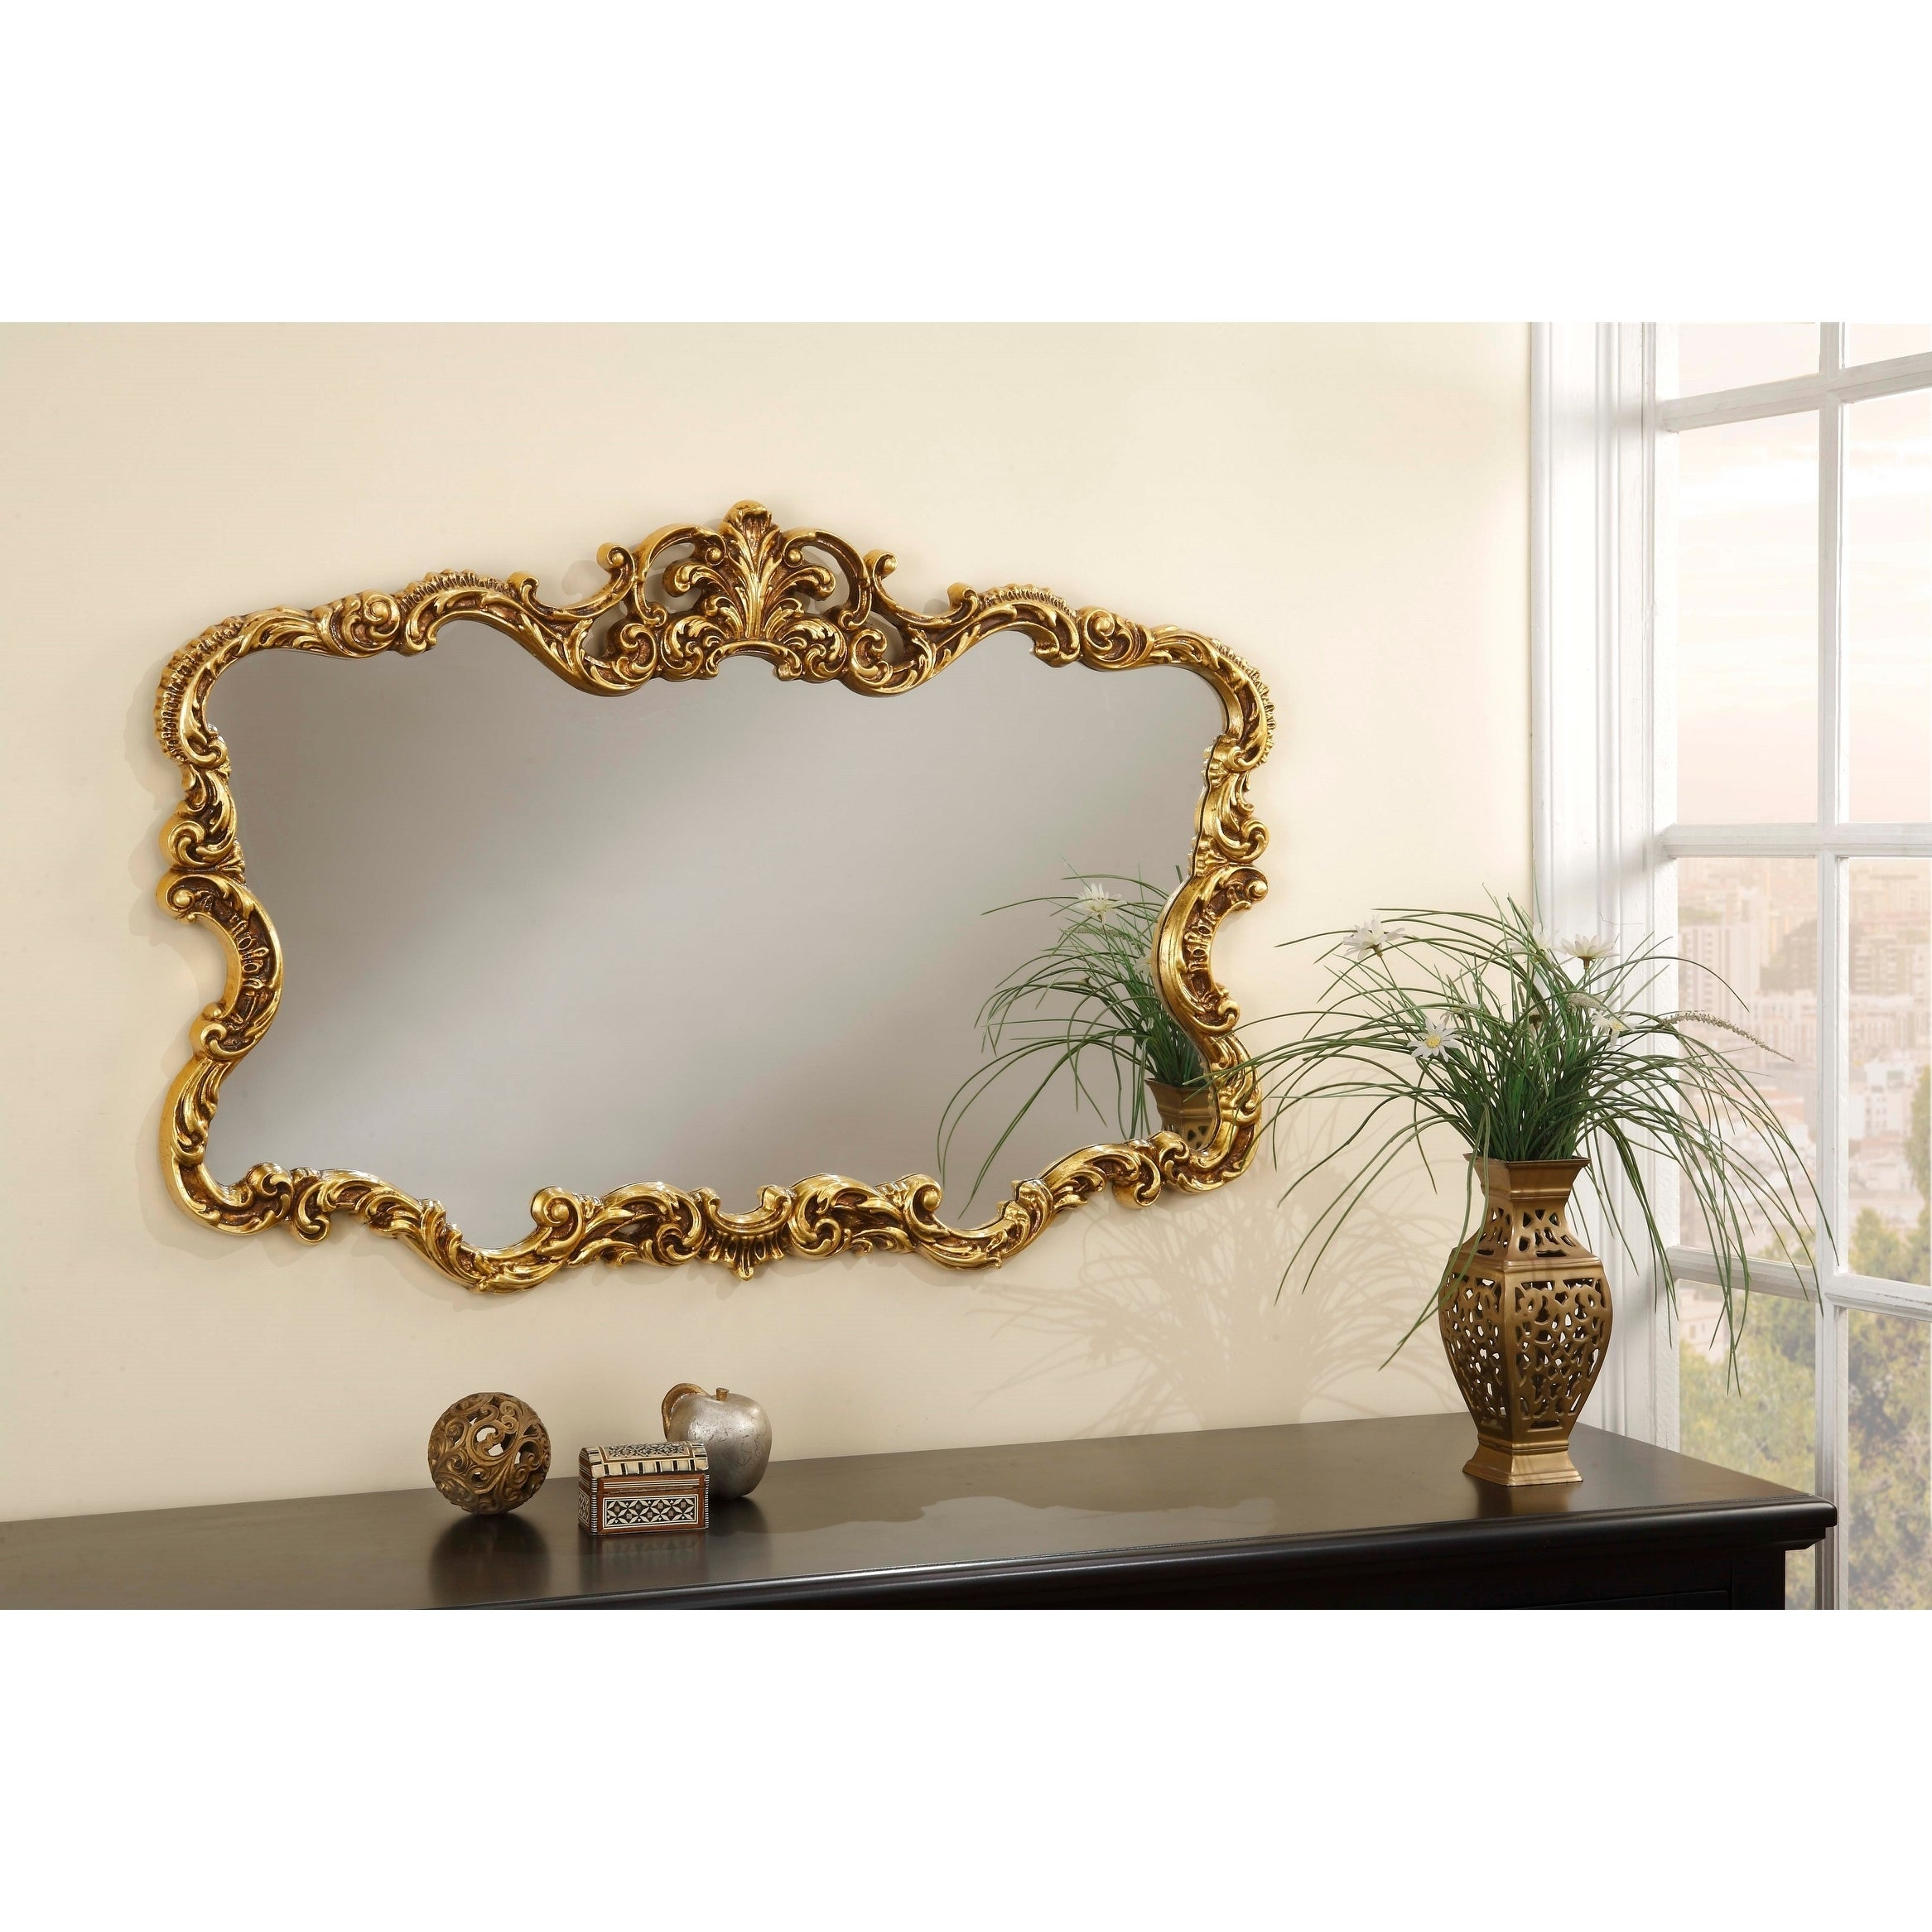 Buy Gold Mirrors Online at Overstock.com | Our Best Decorative ...